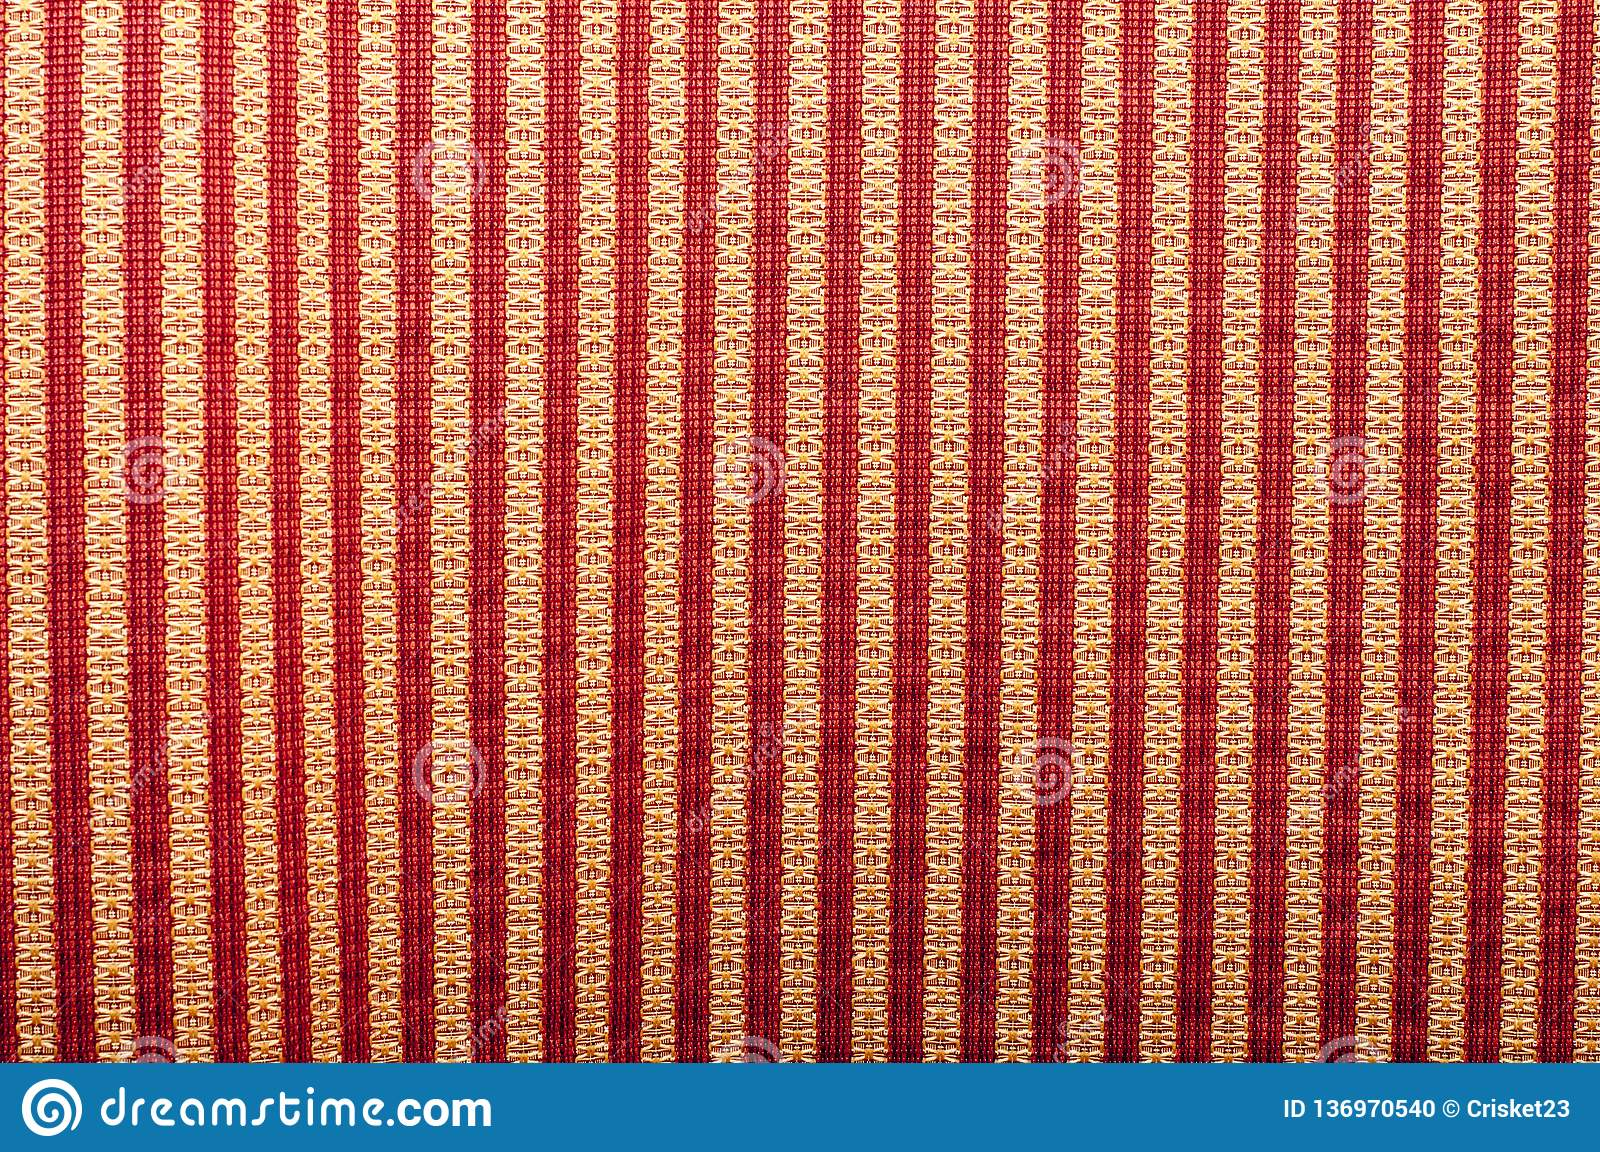 Seamless striped pattern of red and white on stripes on black background